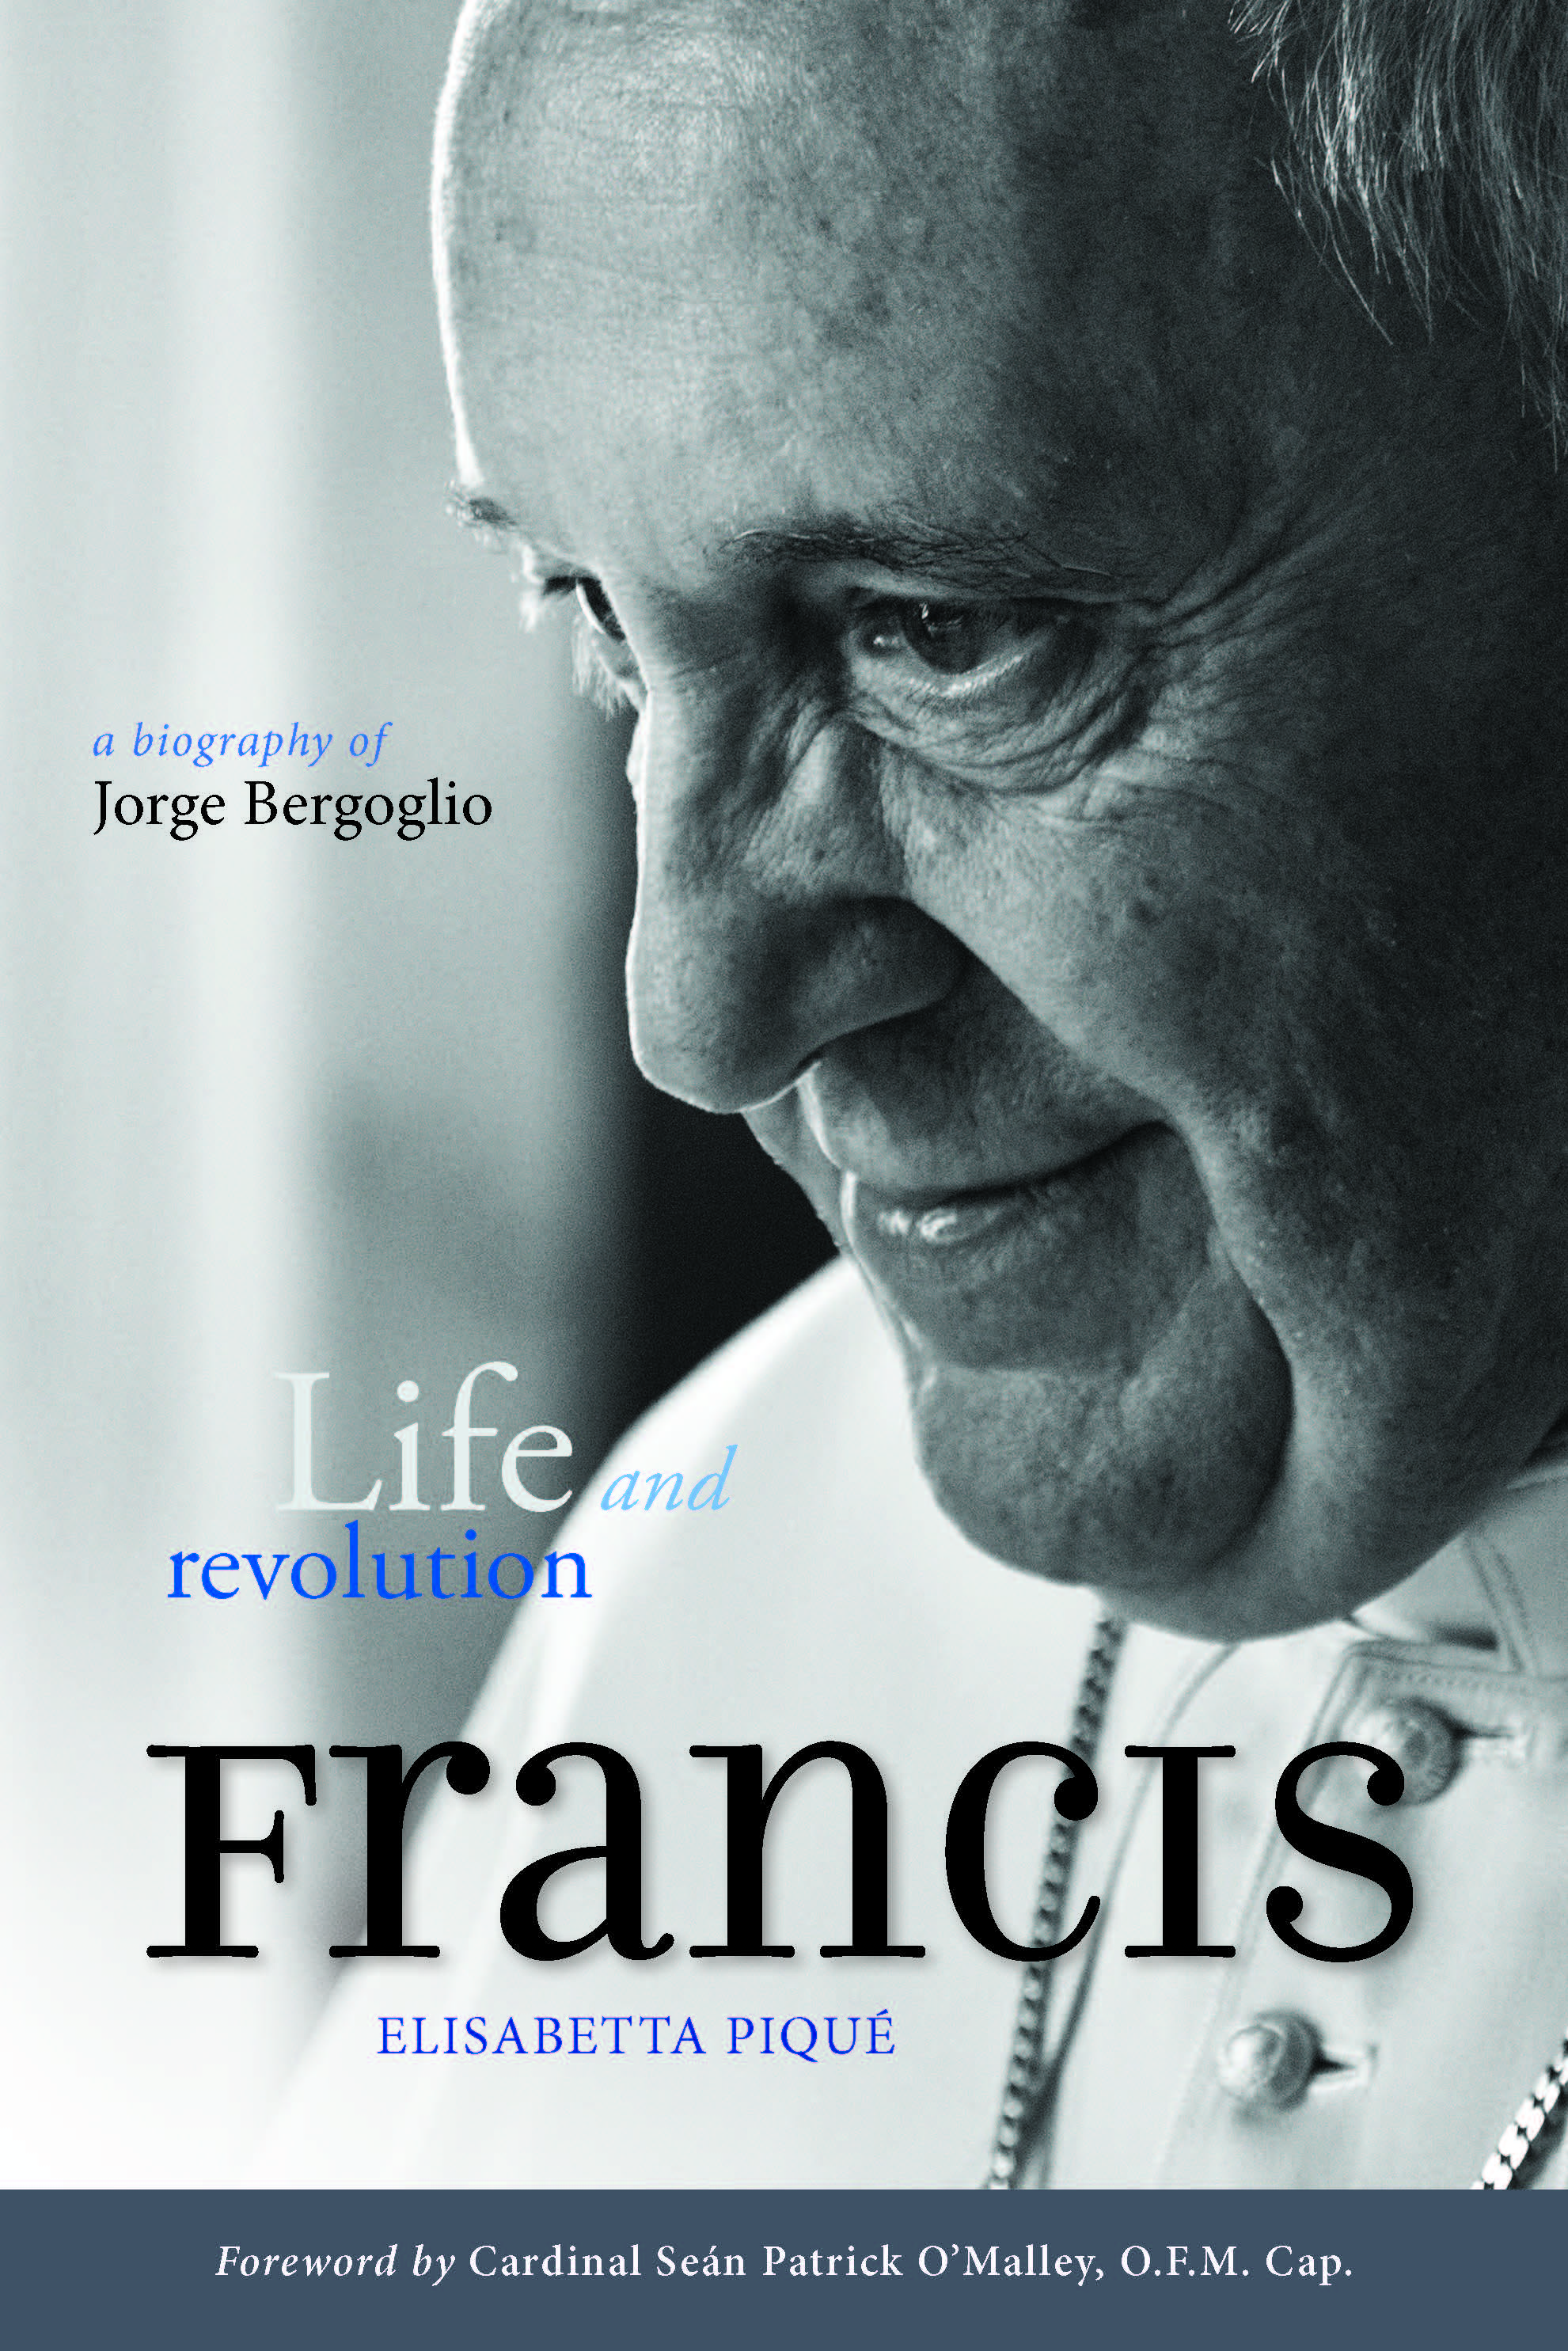 Pope Francis: Life and Revolution: A Biography of Jorge Bergoglio